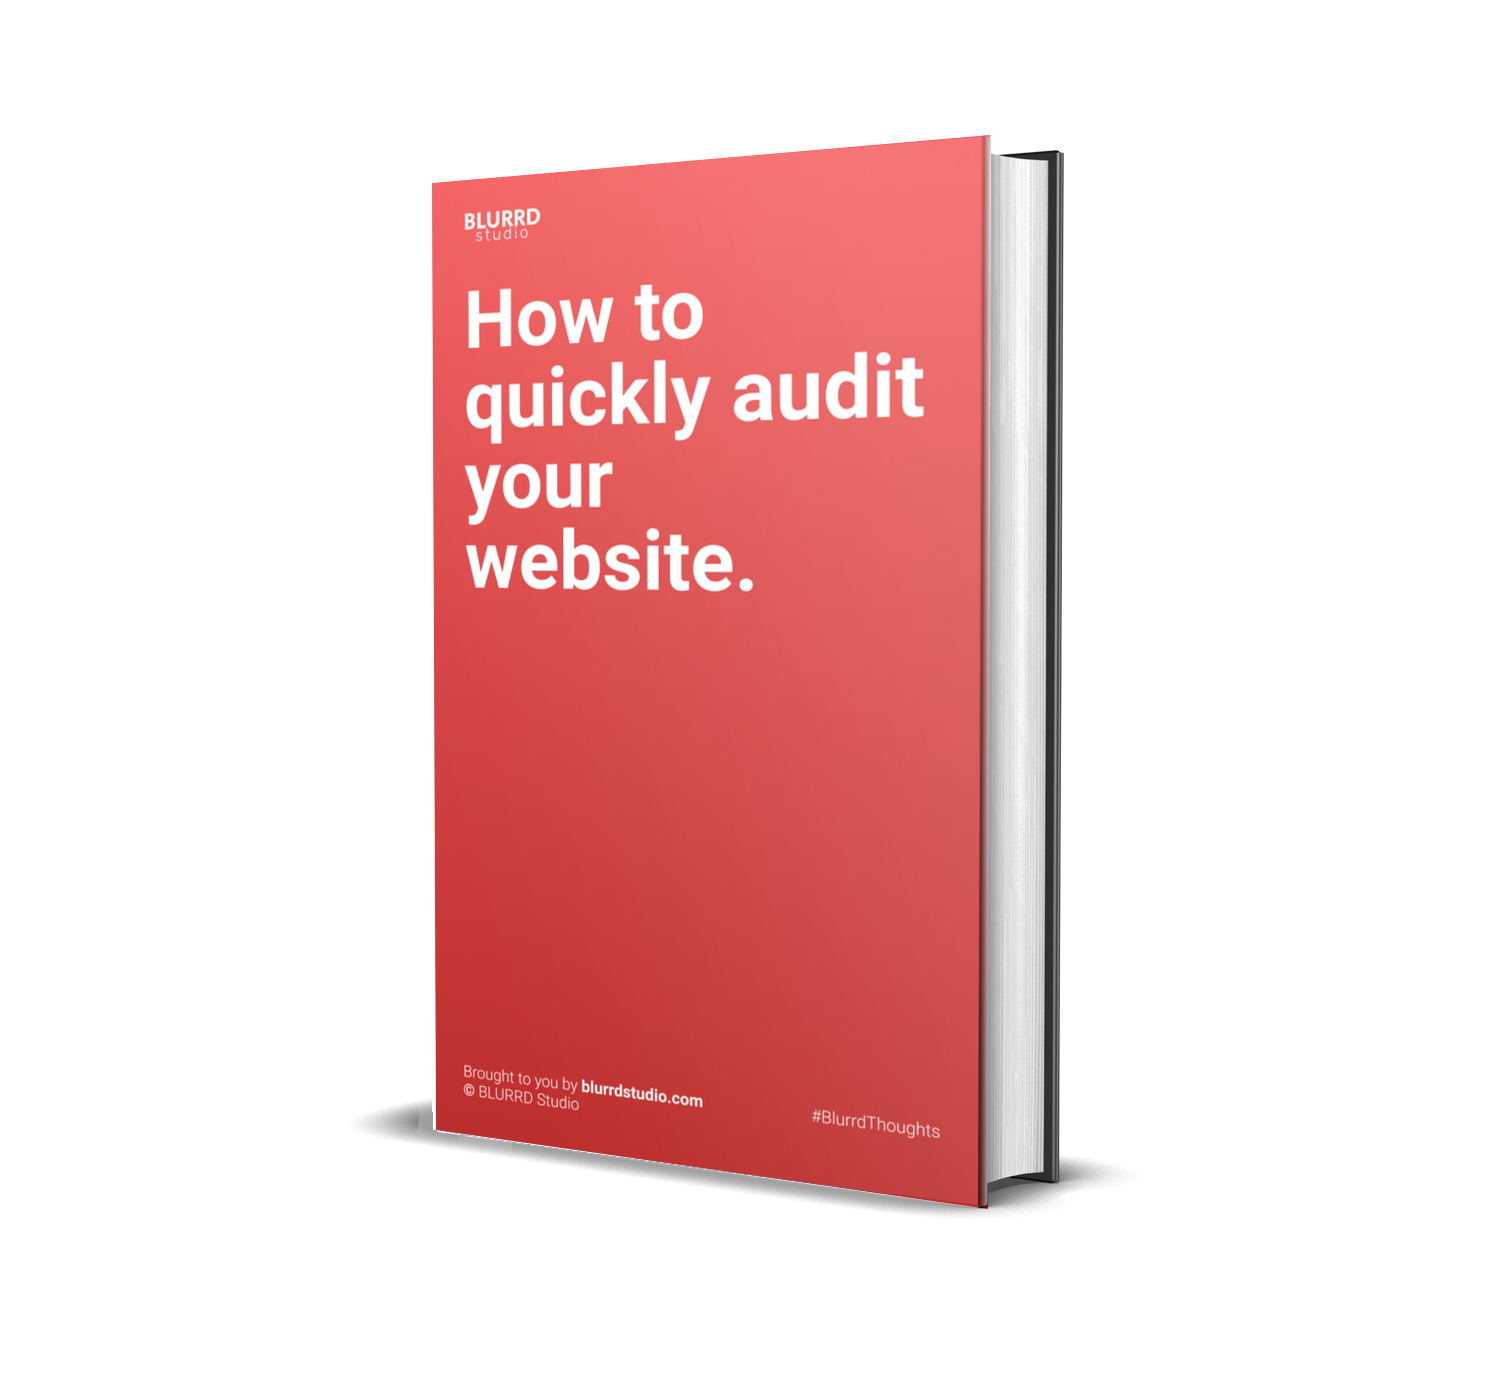 How to quickly audit your website